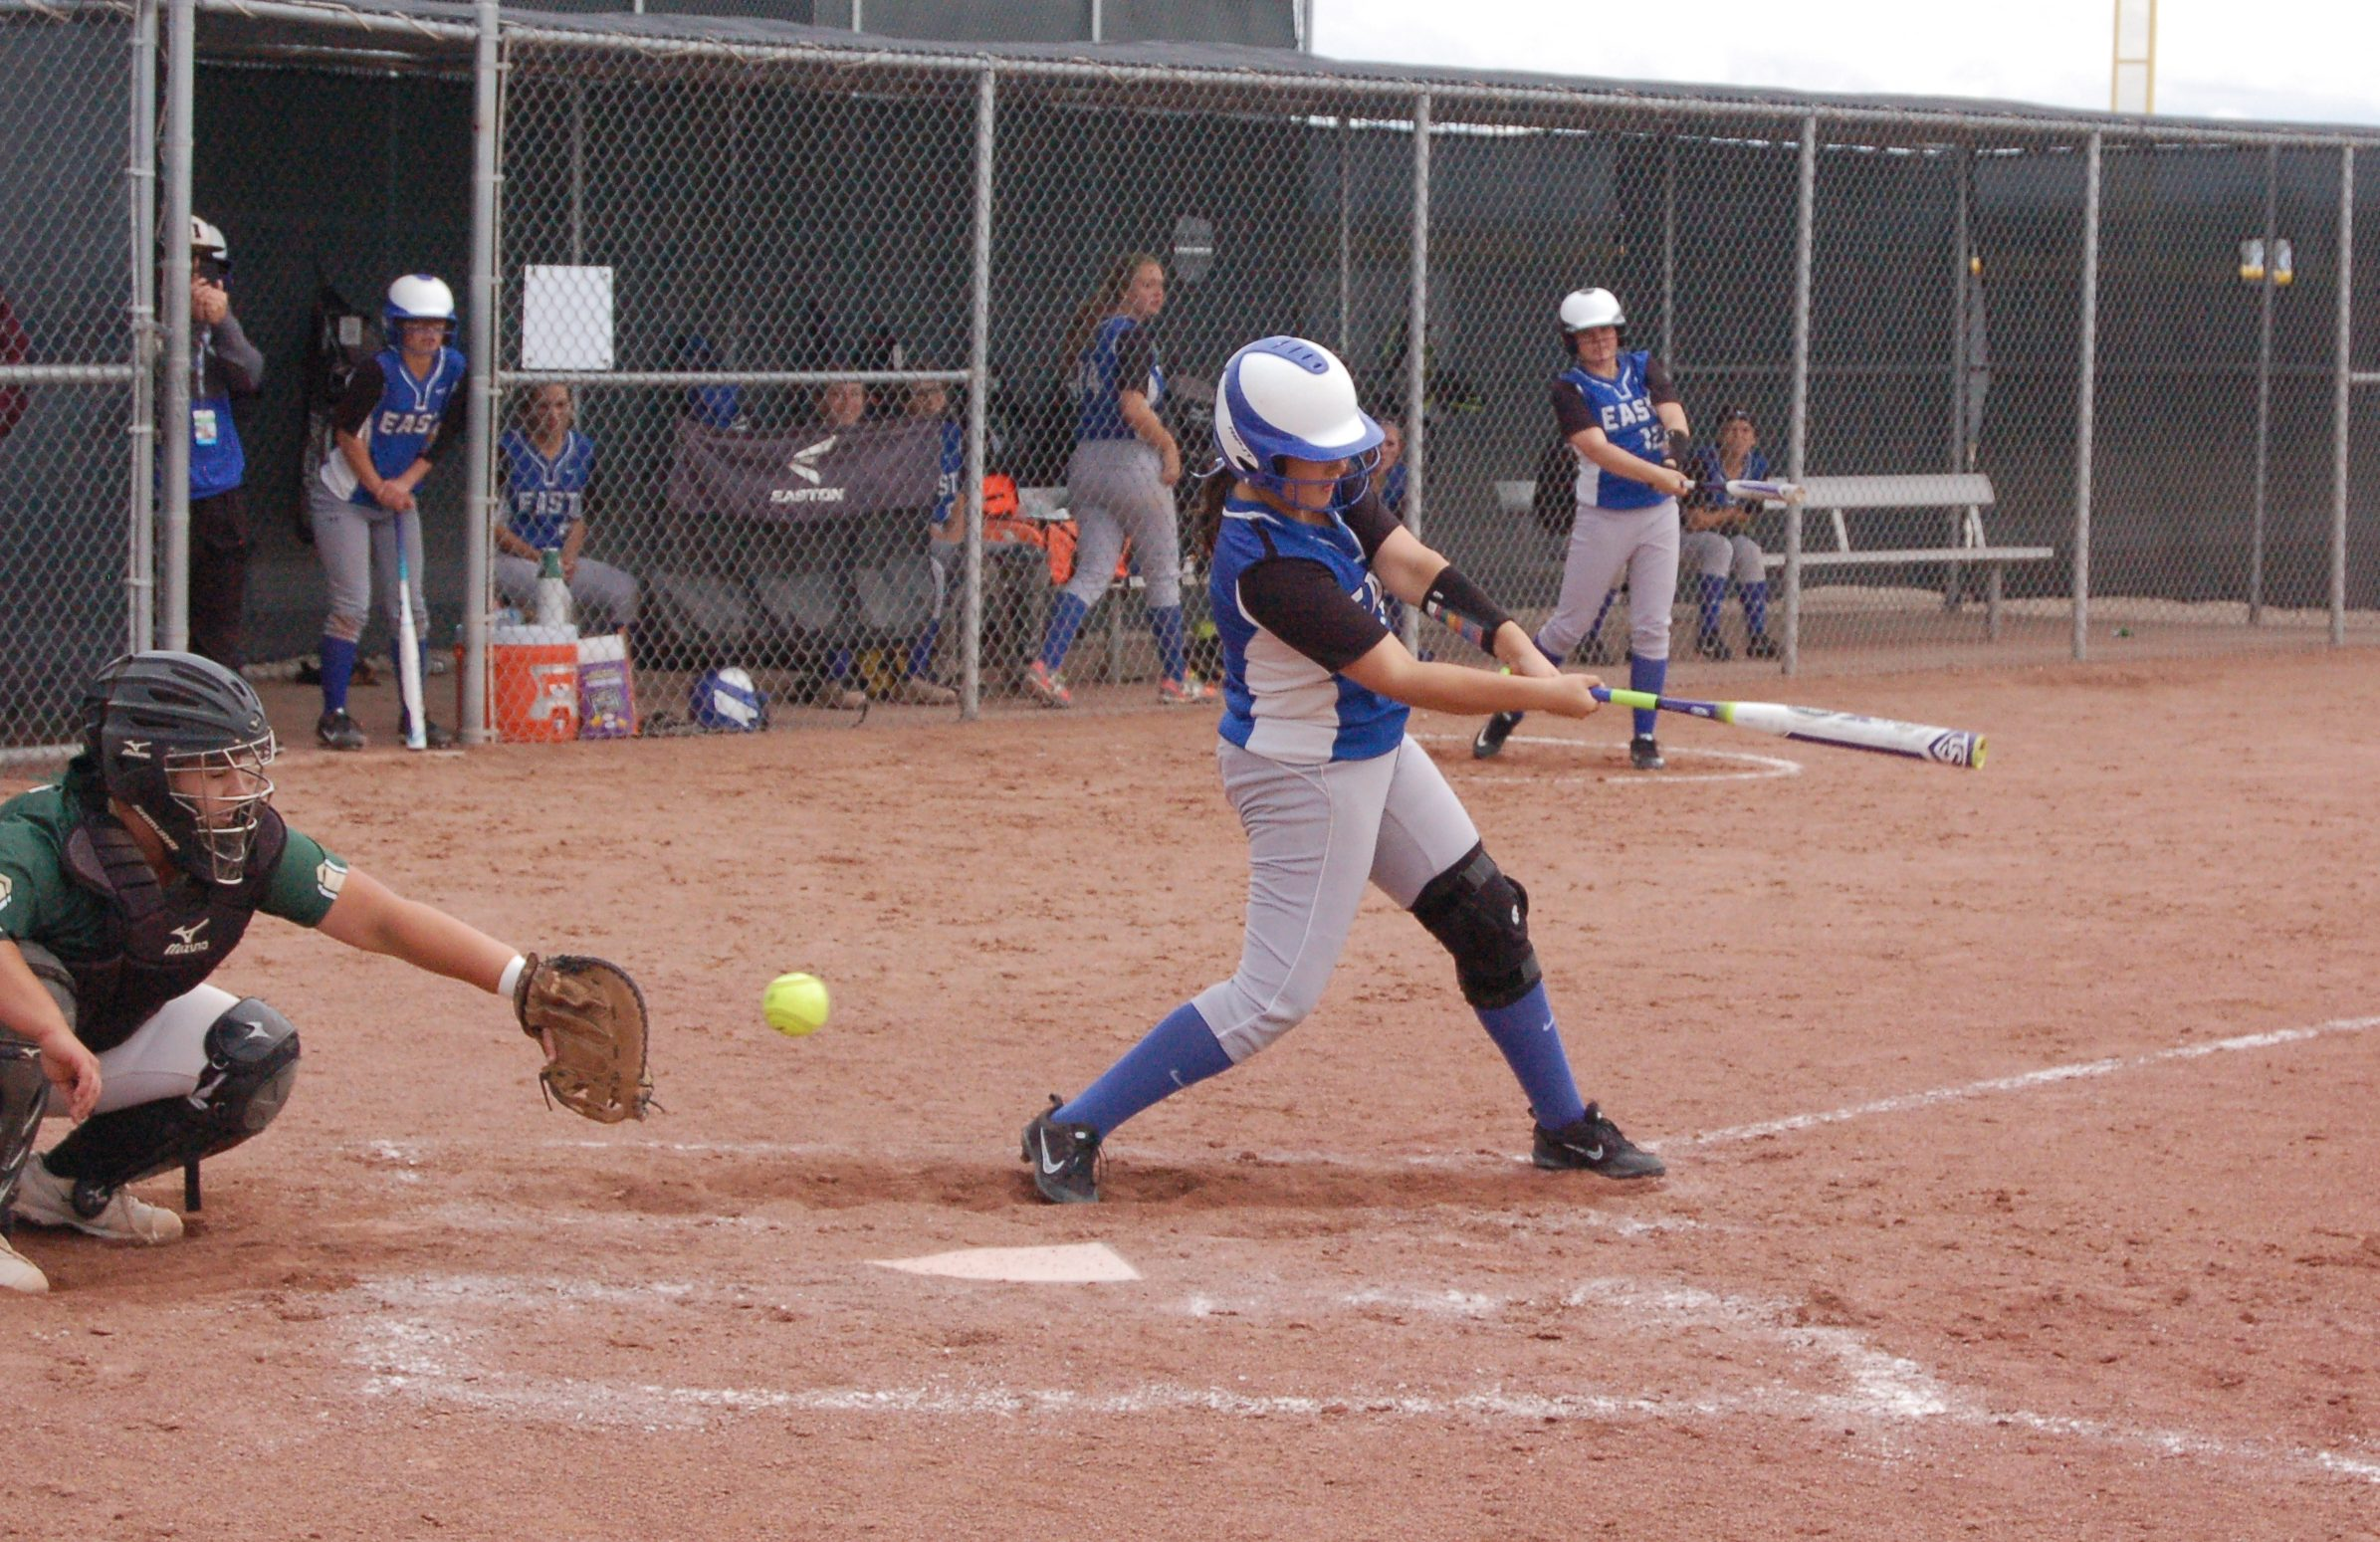 E. Mtn. softball comes up short against Hope